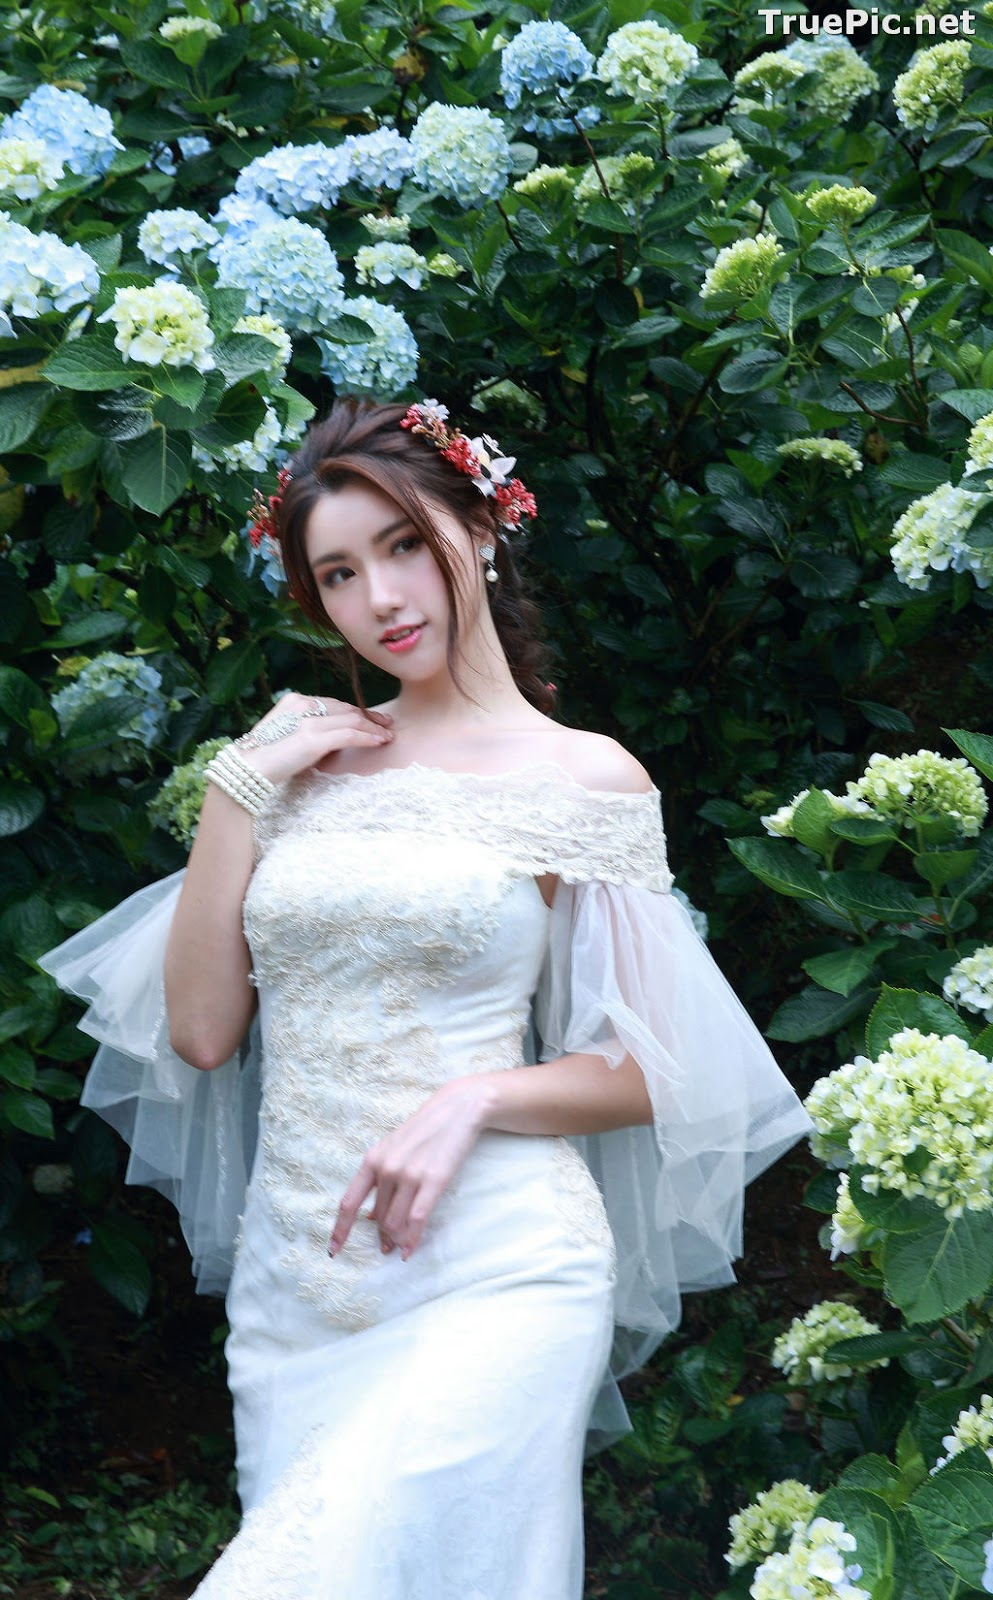 Image Taiwanese Model - 張倫甄 - Beautiful Bride and Hydrangea Flowers - TruePic.net - Picture-8